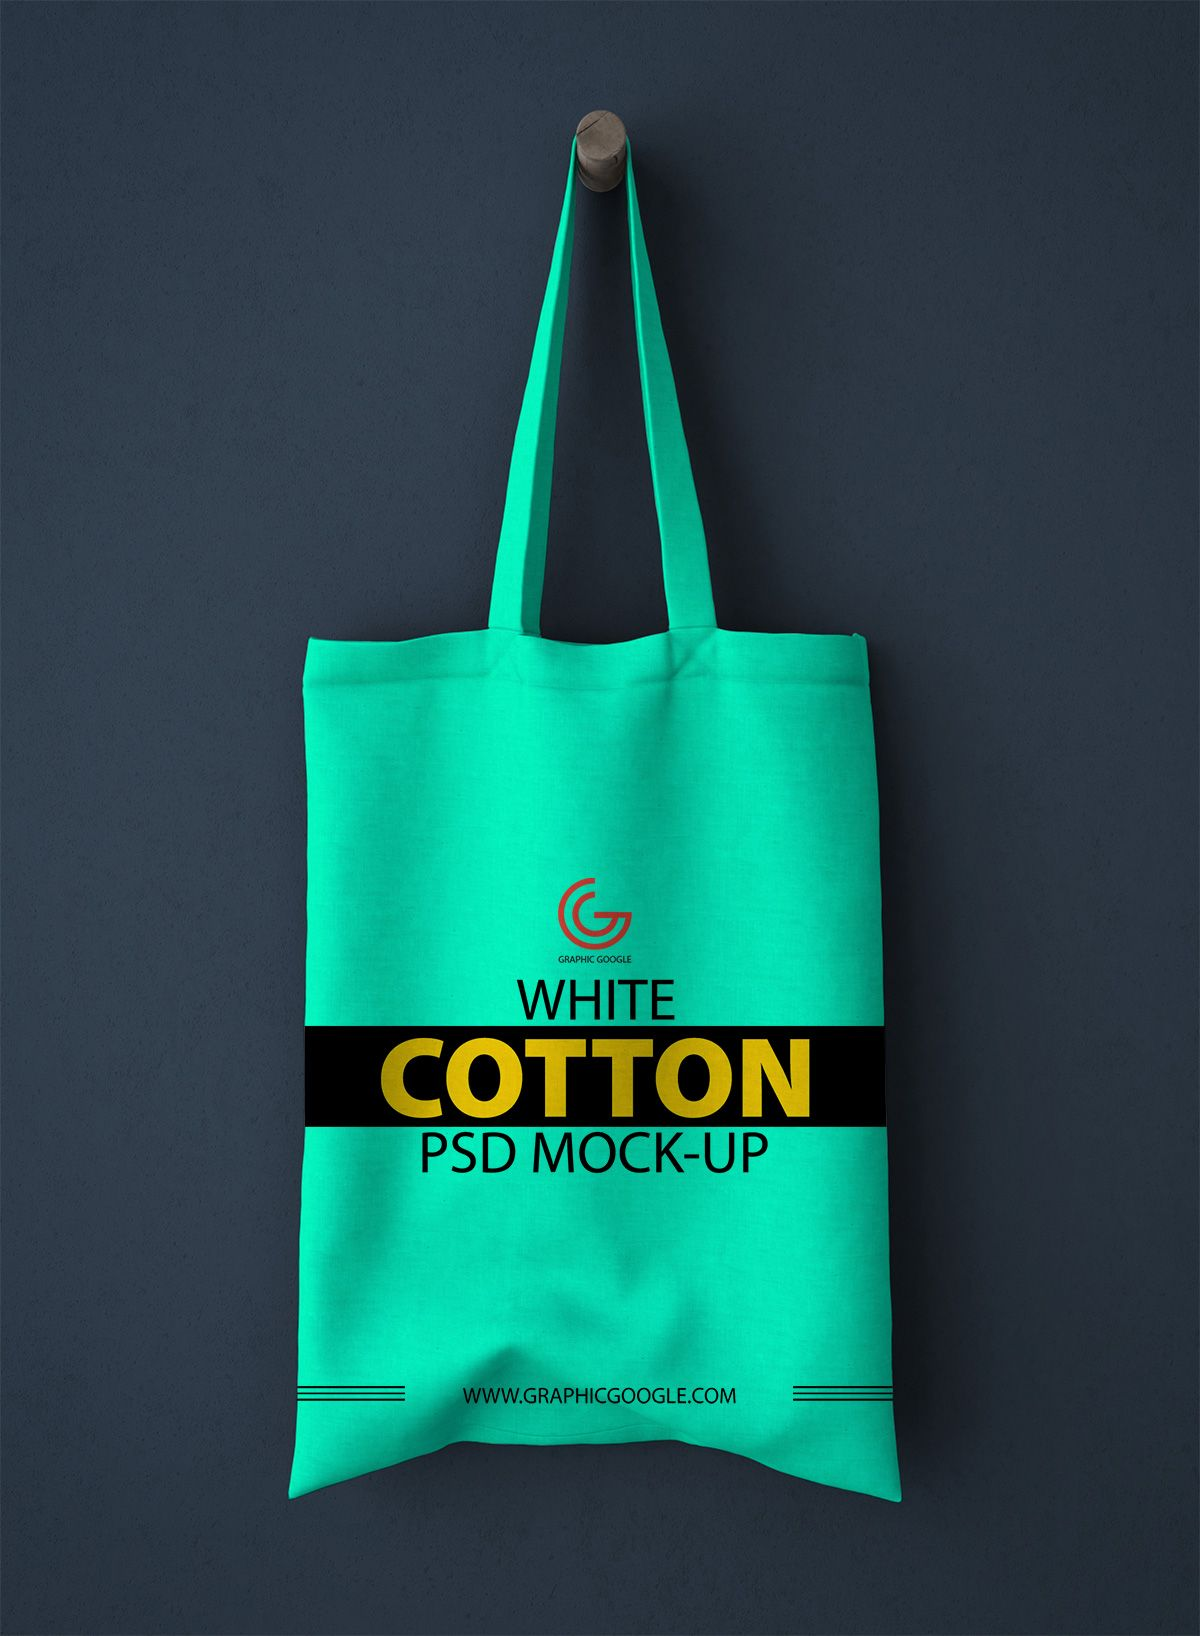 Download Cotton Bag Psd Mockup For Eco Friendly Packaging Option Cotton Bag Psd Mockup Ecofriendly Packaging Cotton Bag Bags Mockup Psd